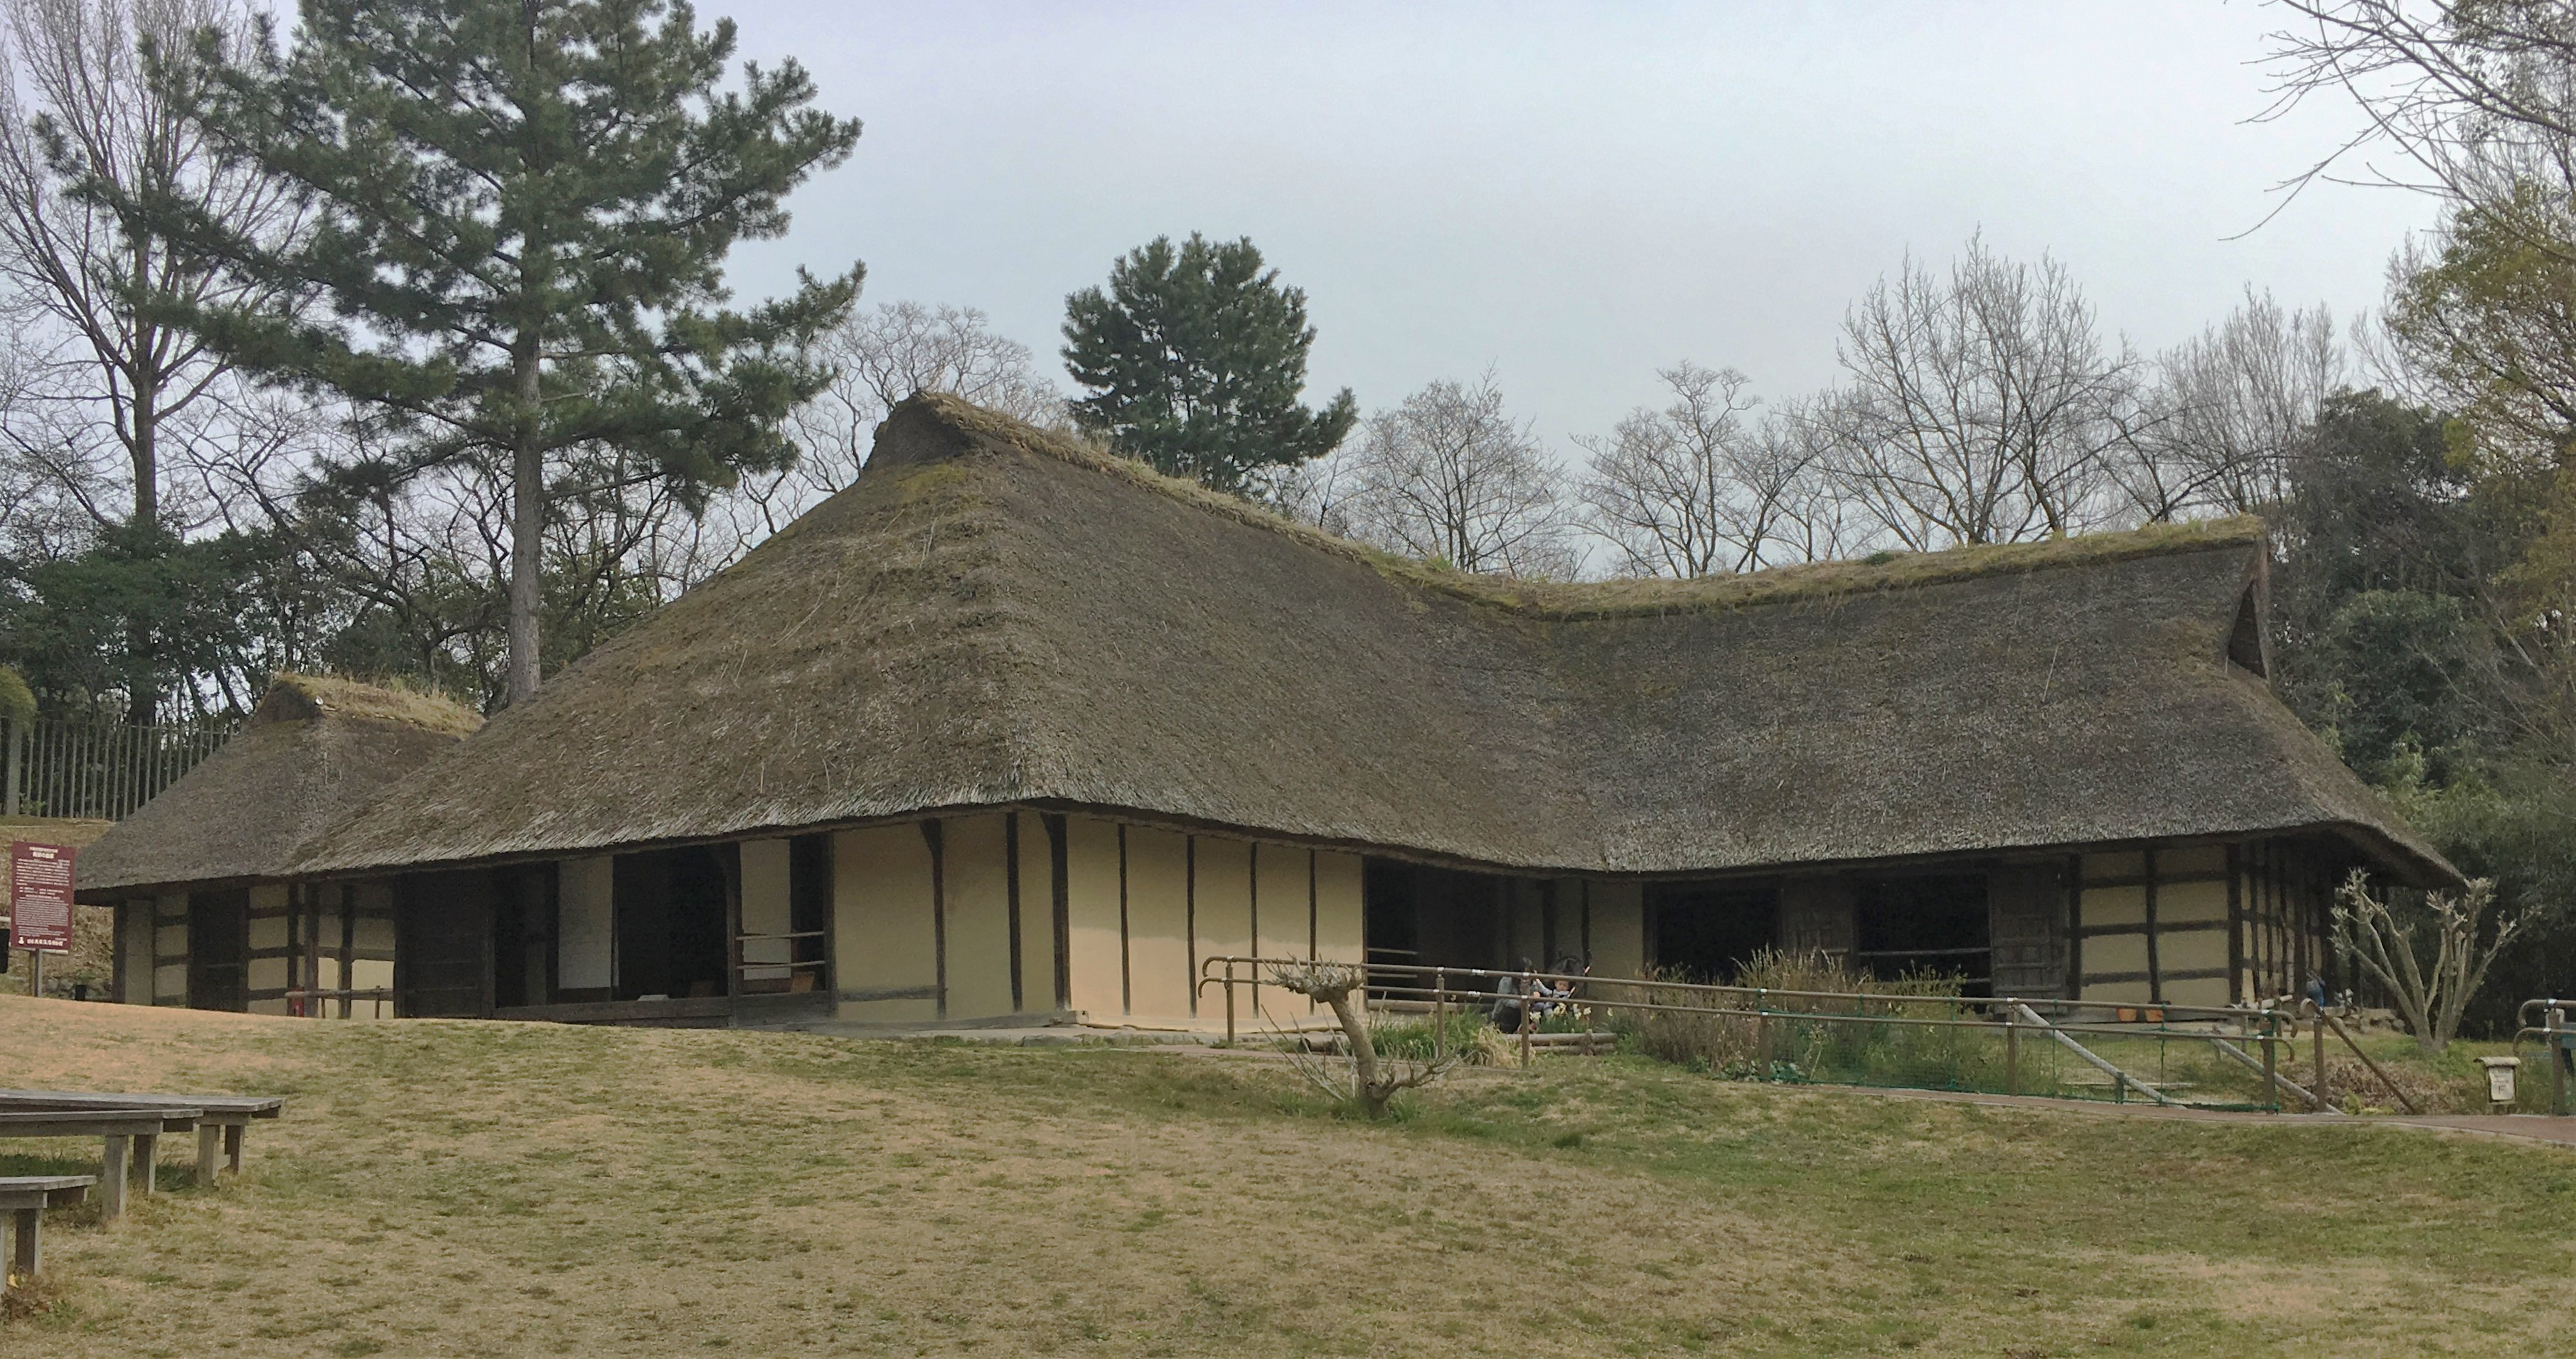 Magariya farmhouse from Iwate in the Open-air museum of old Japanese farmhouses